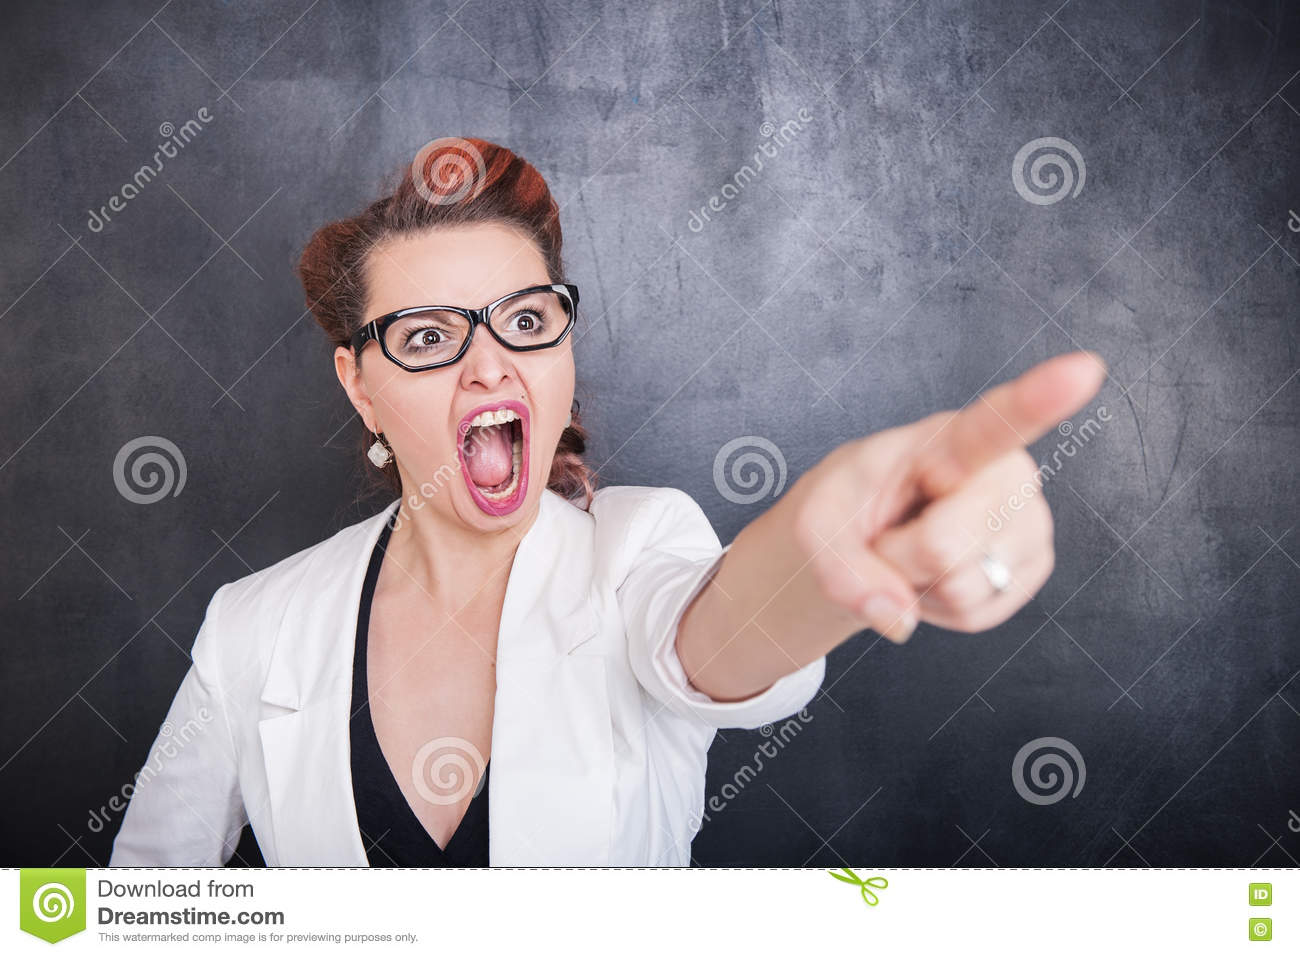 Angry screaming woman pointing out on blackboard background